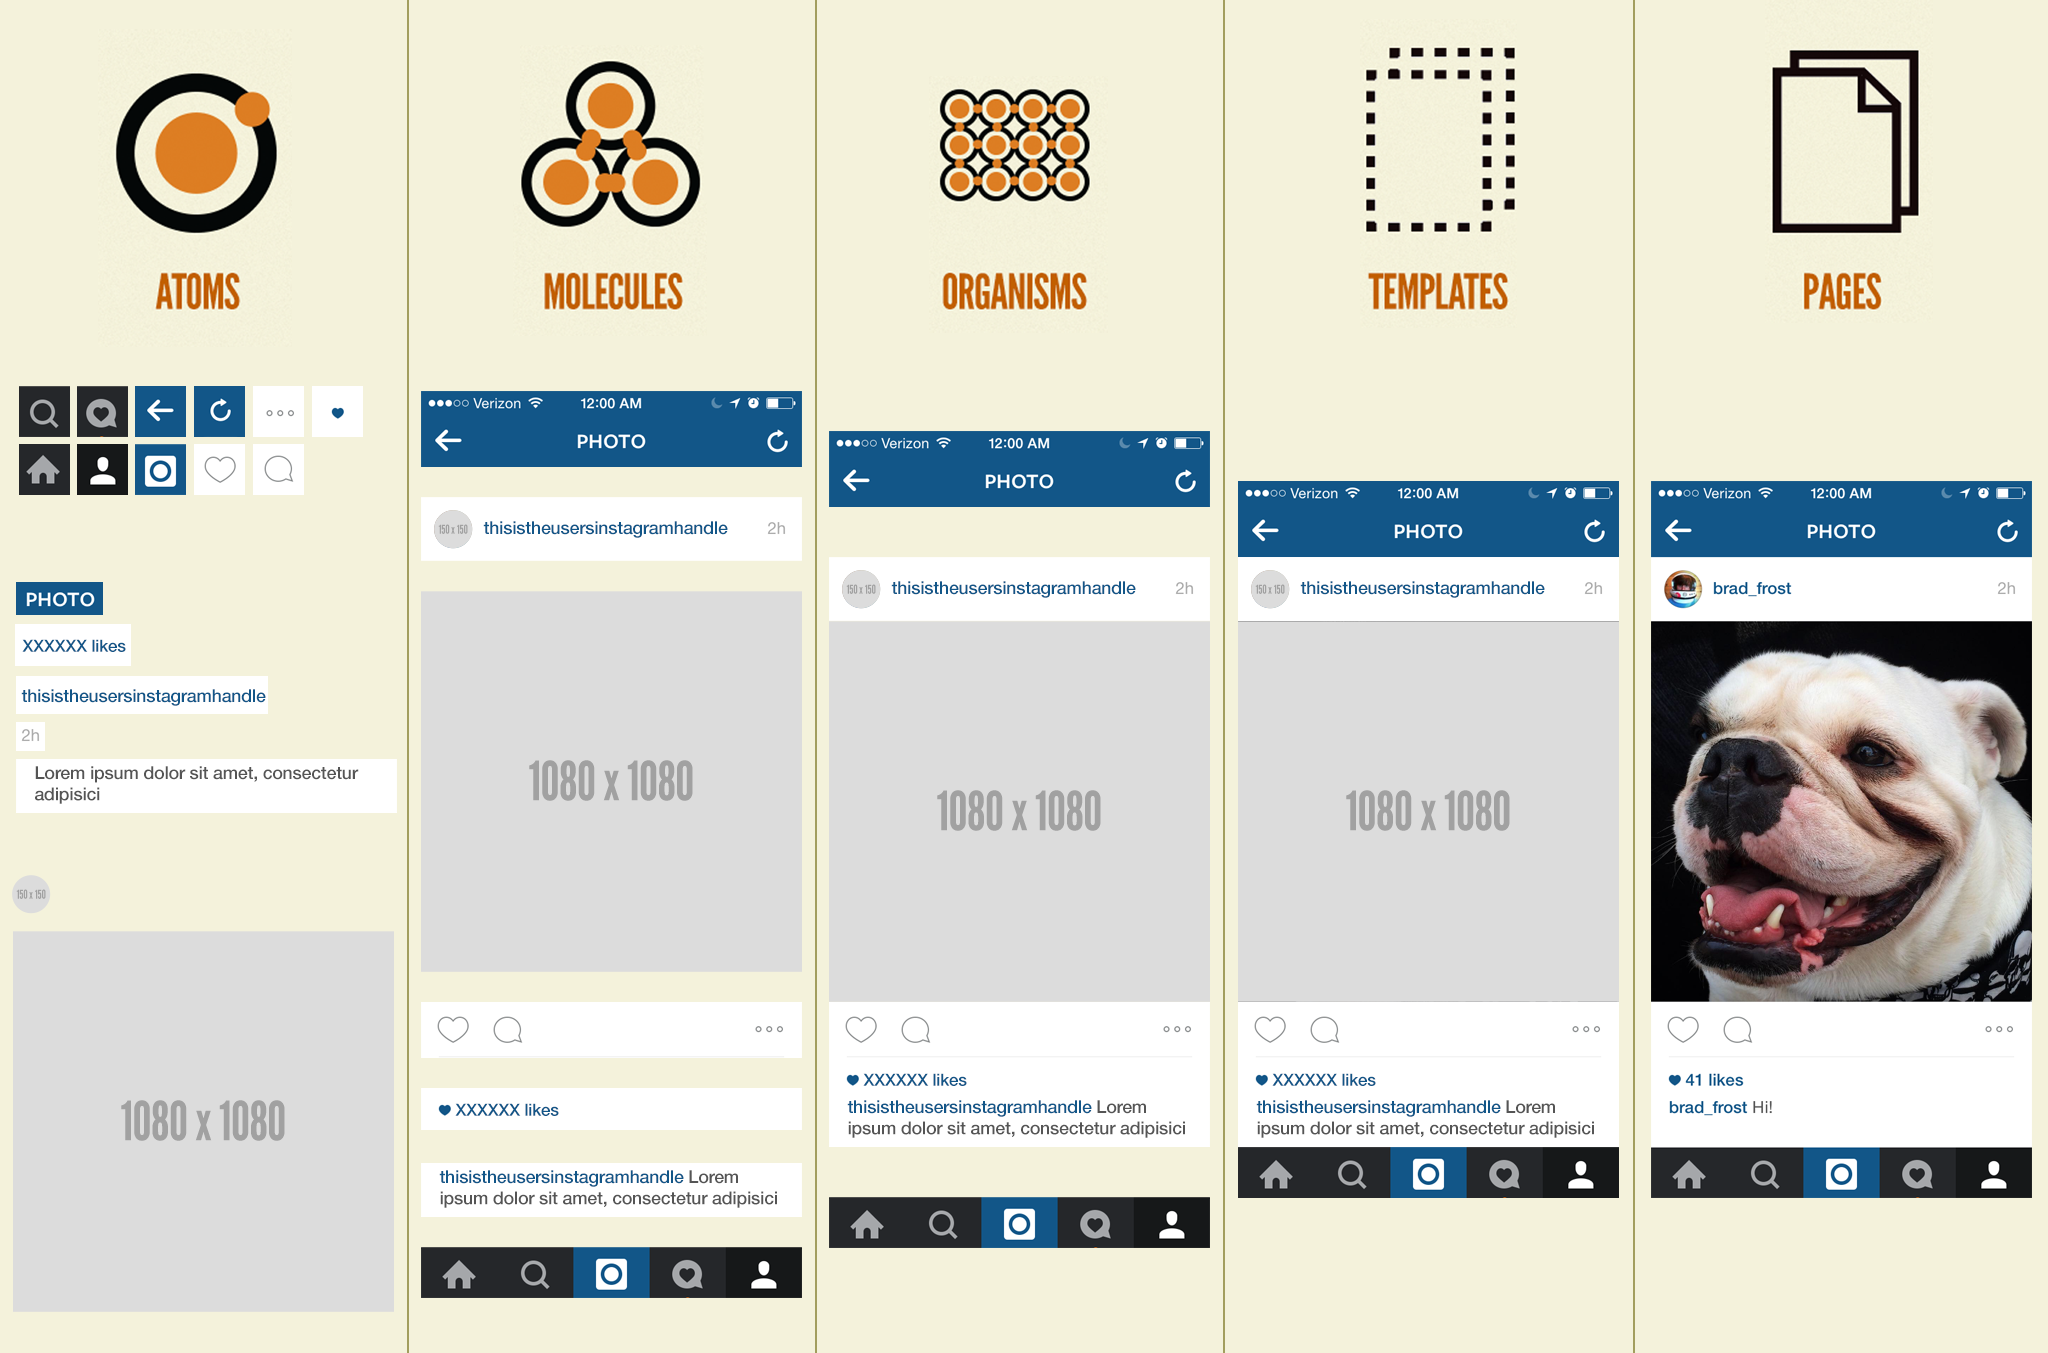 Atomic design applied to the native mobile app Instagram.